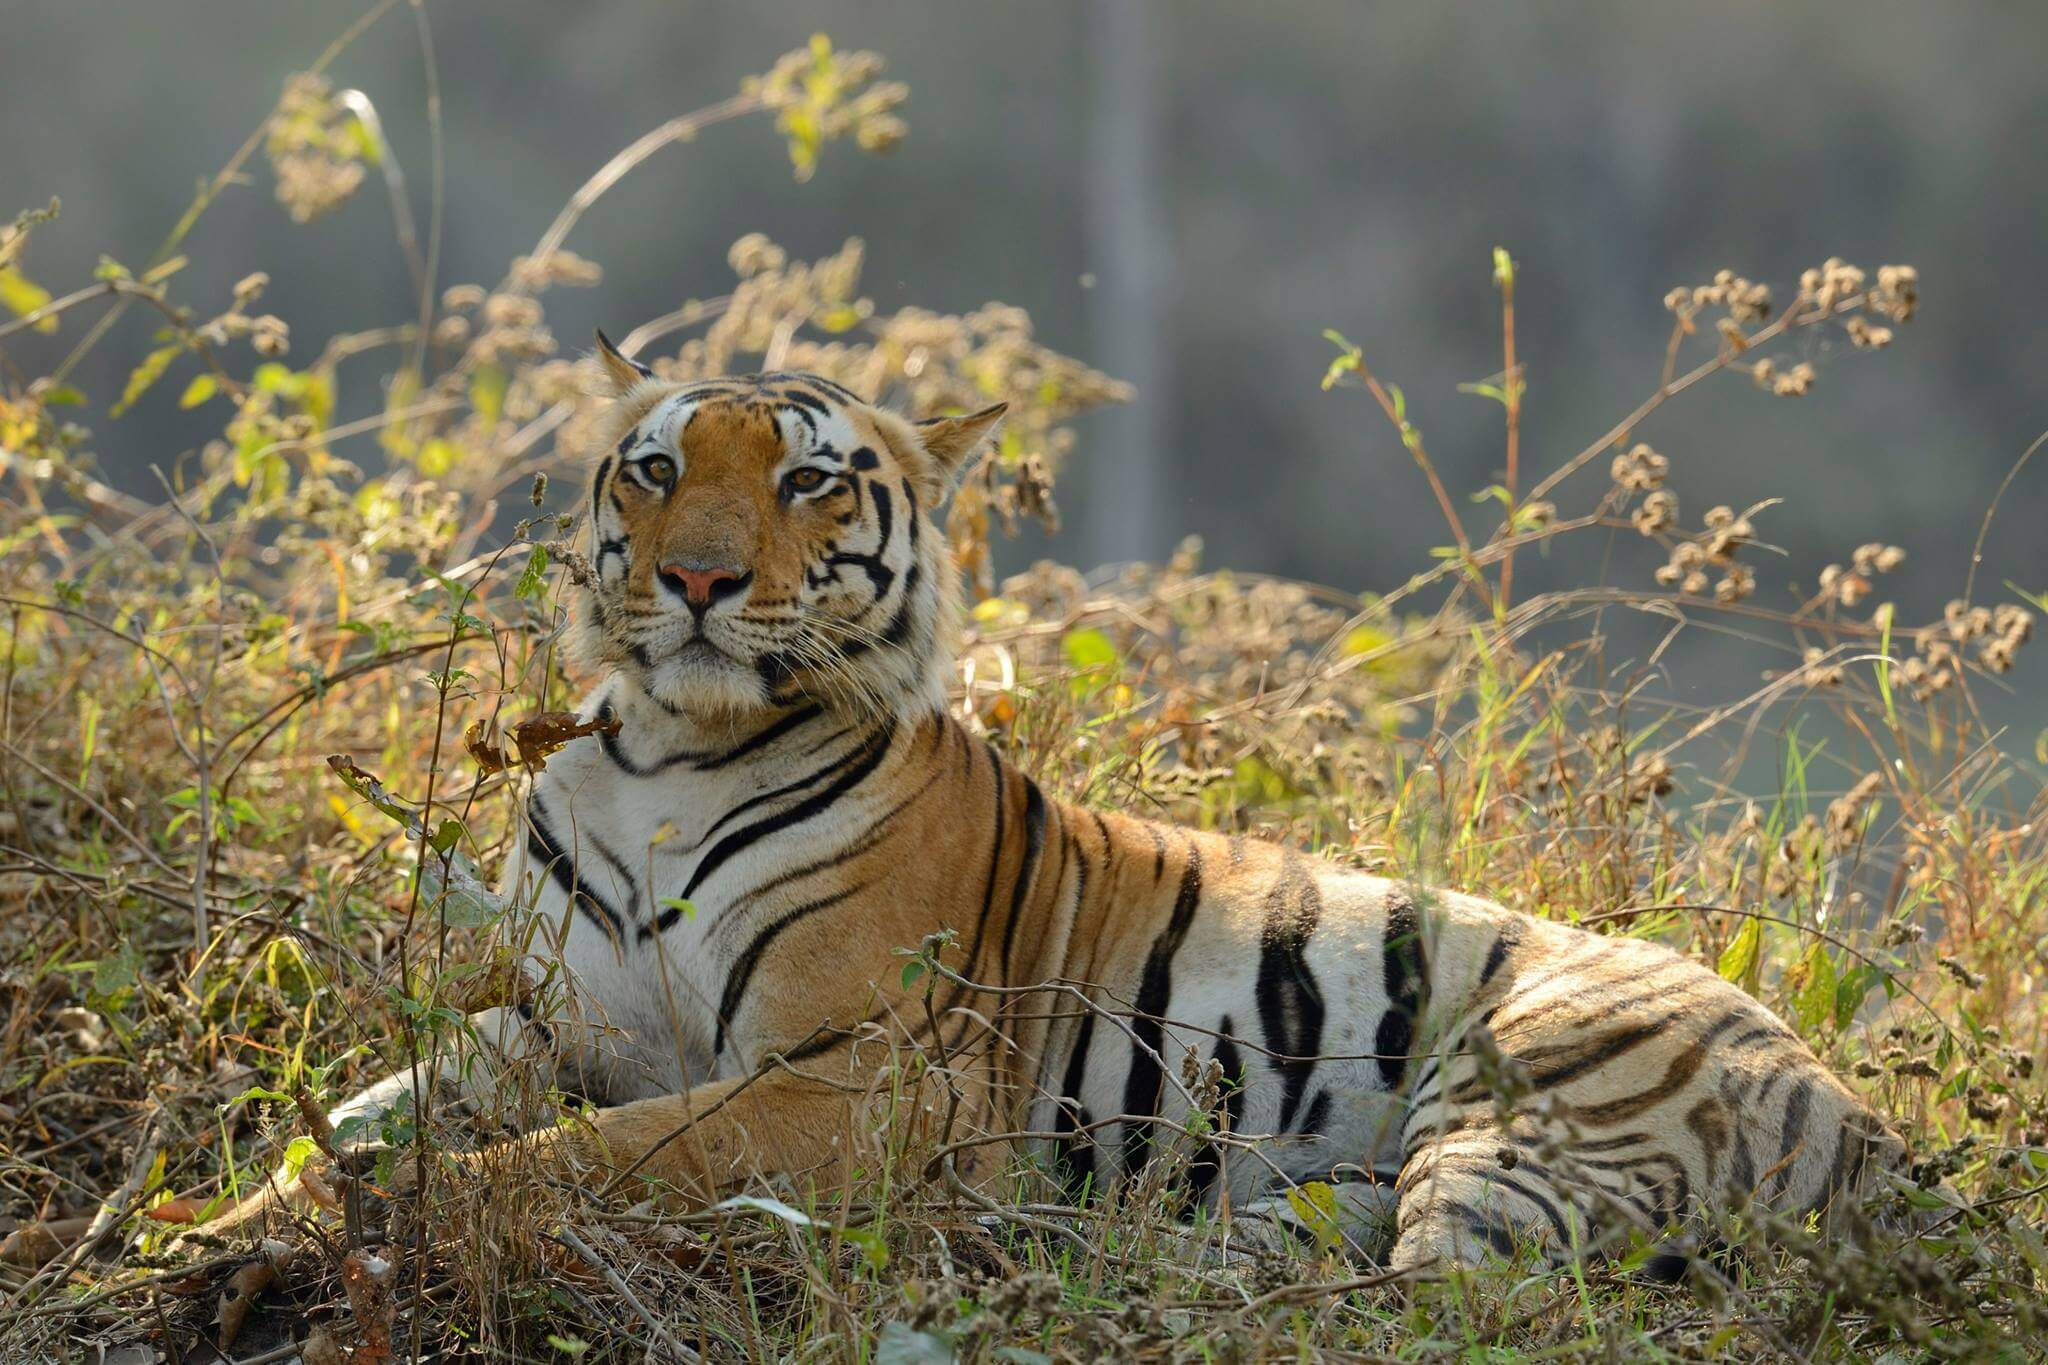 royal bengal tiger | endangered tiger conservation | habitat | facts